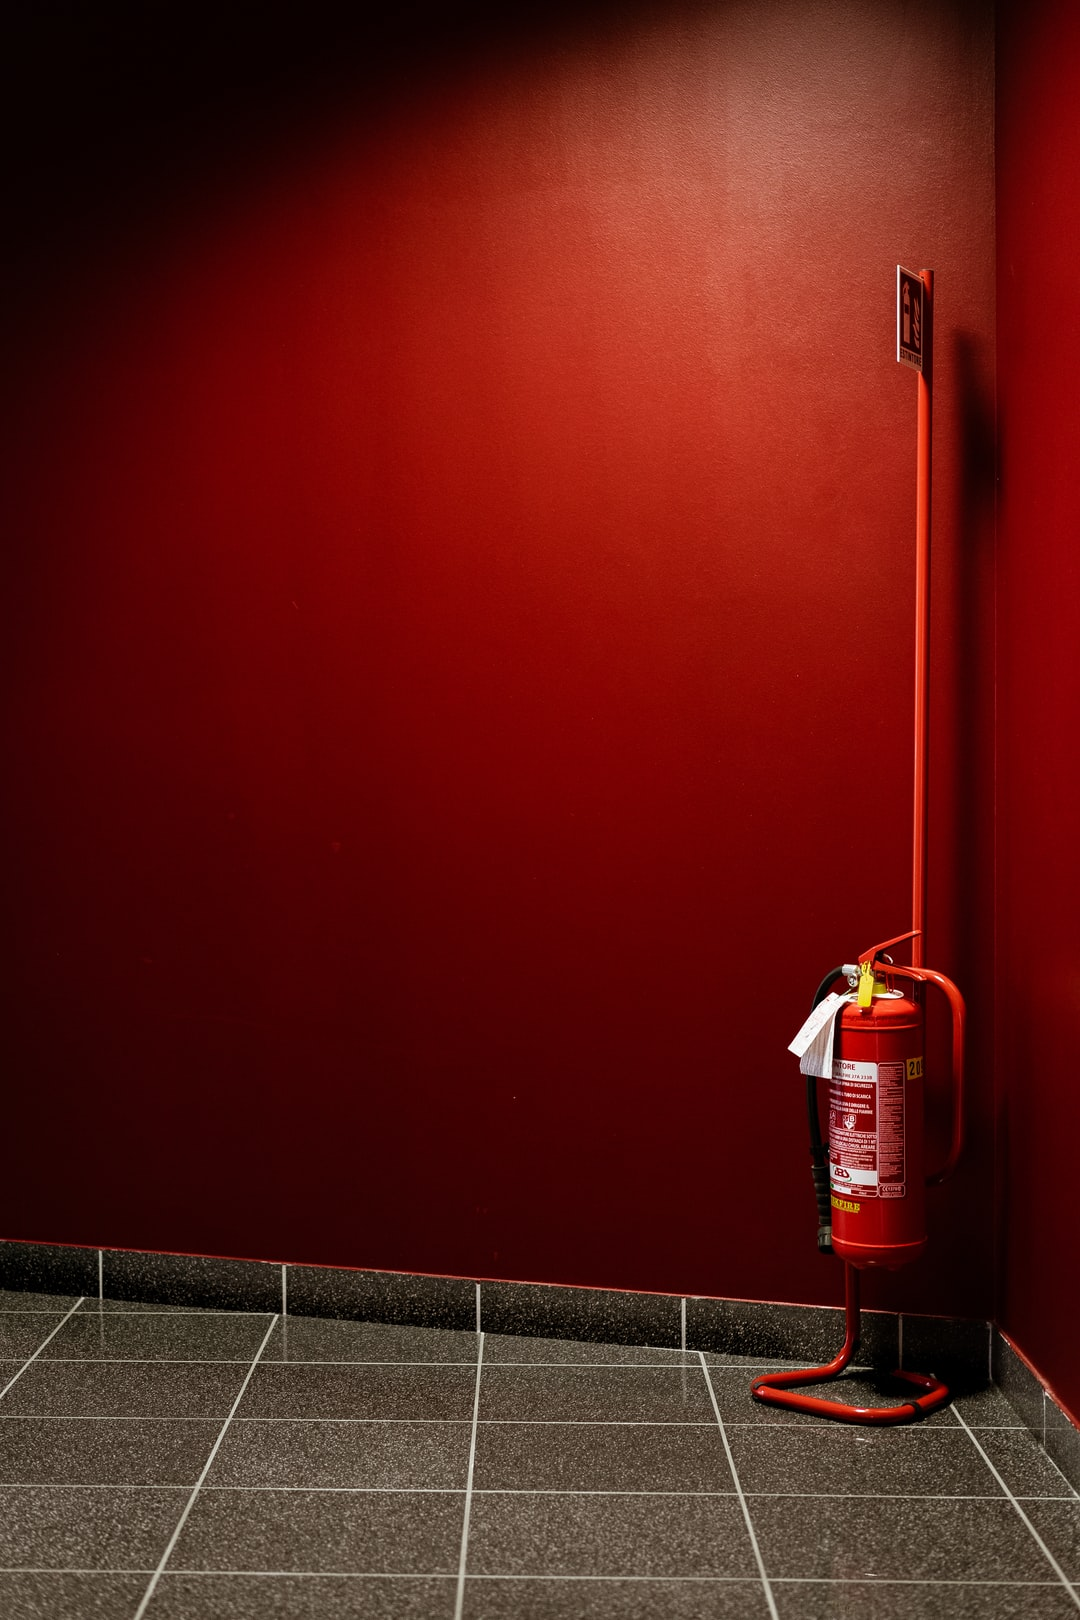 Which fire extinguisher do I need for the office?